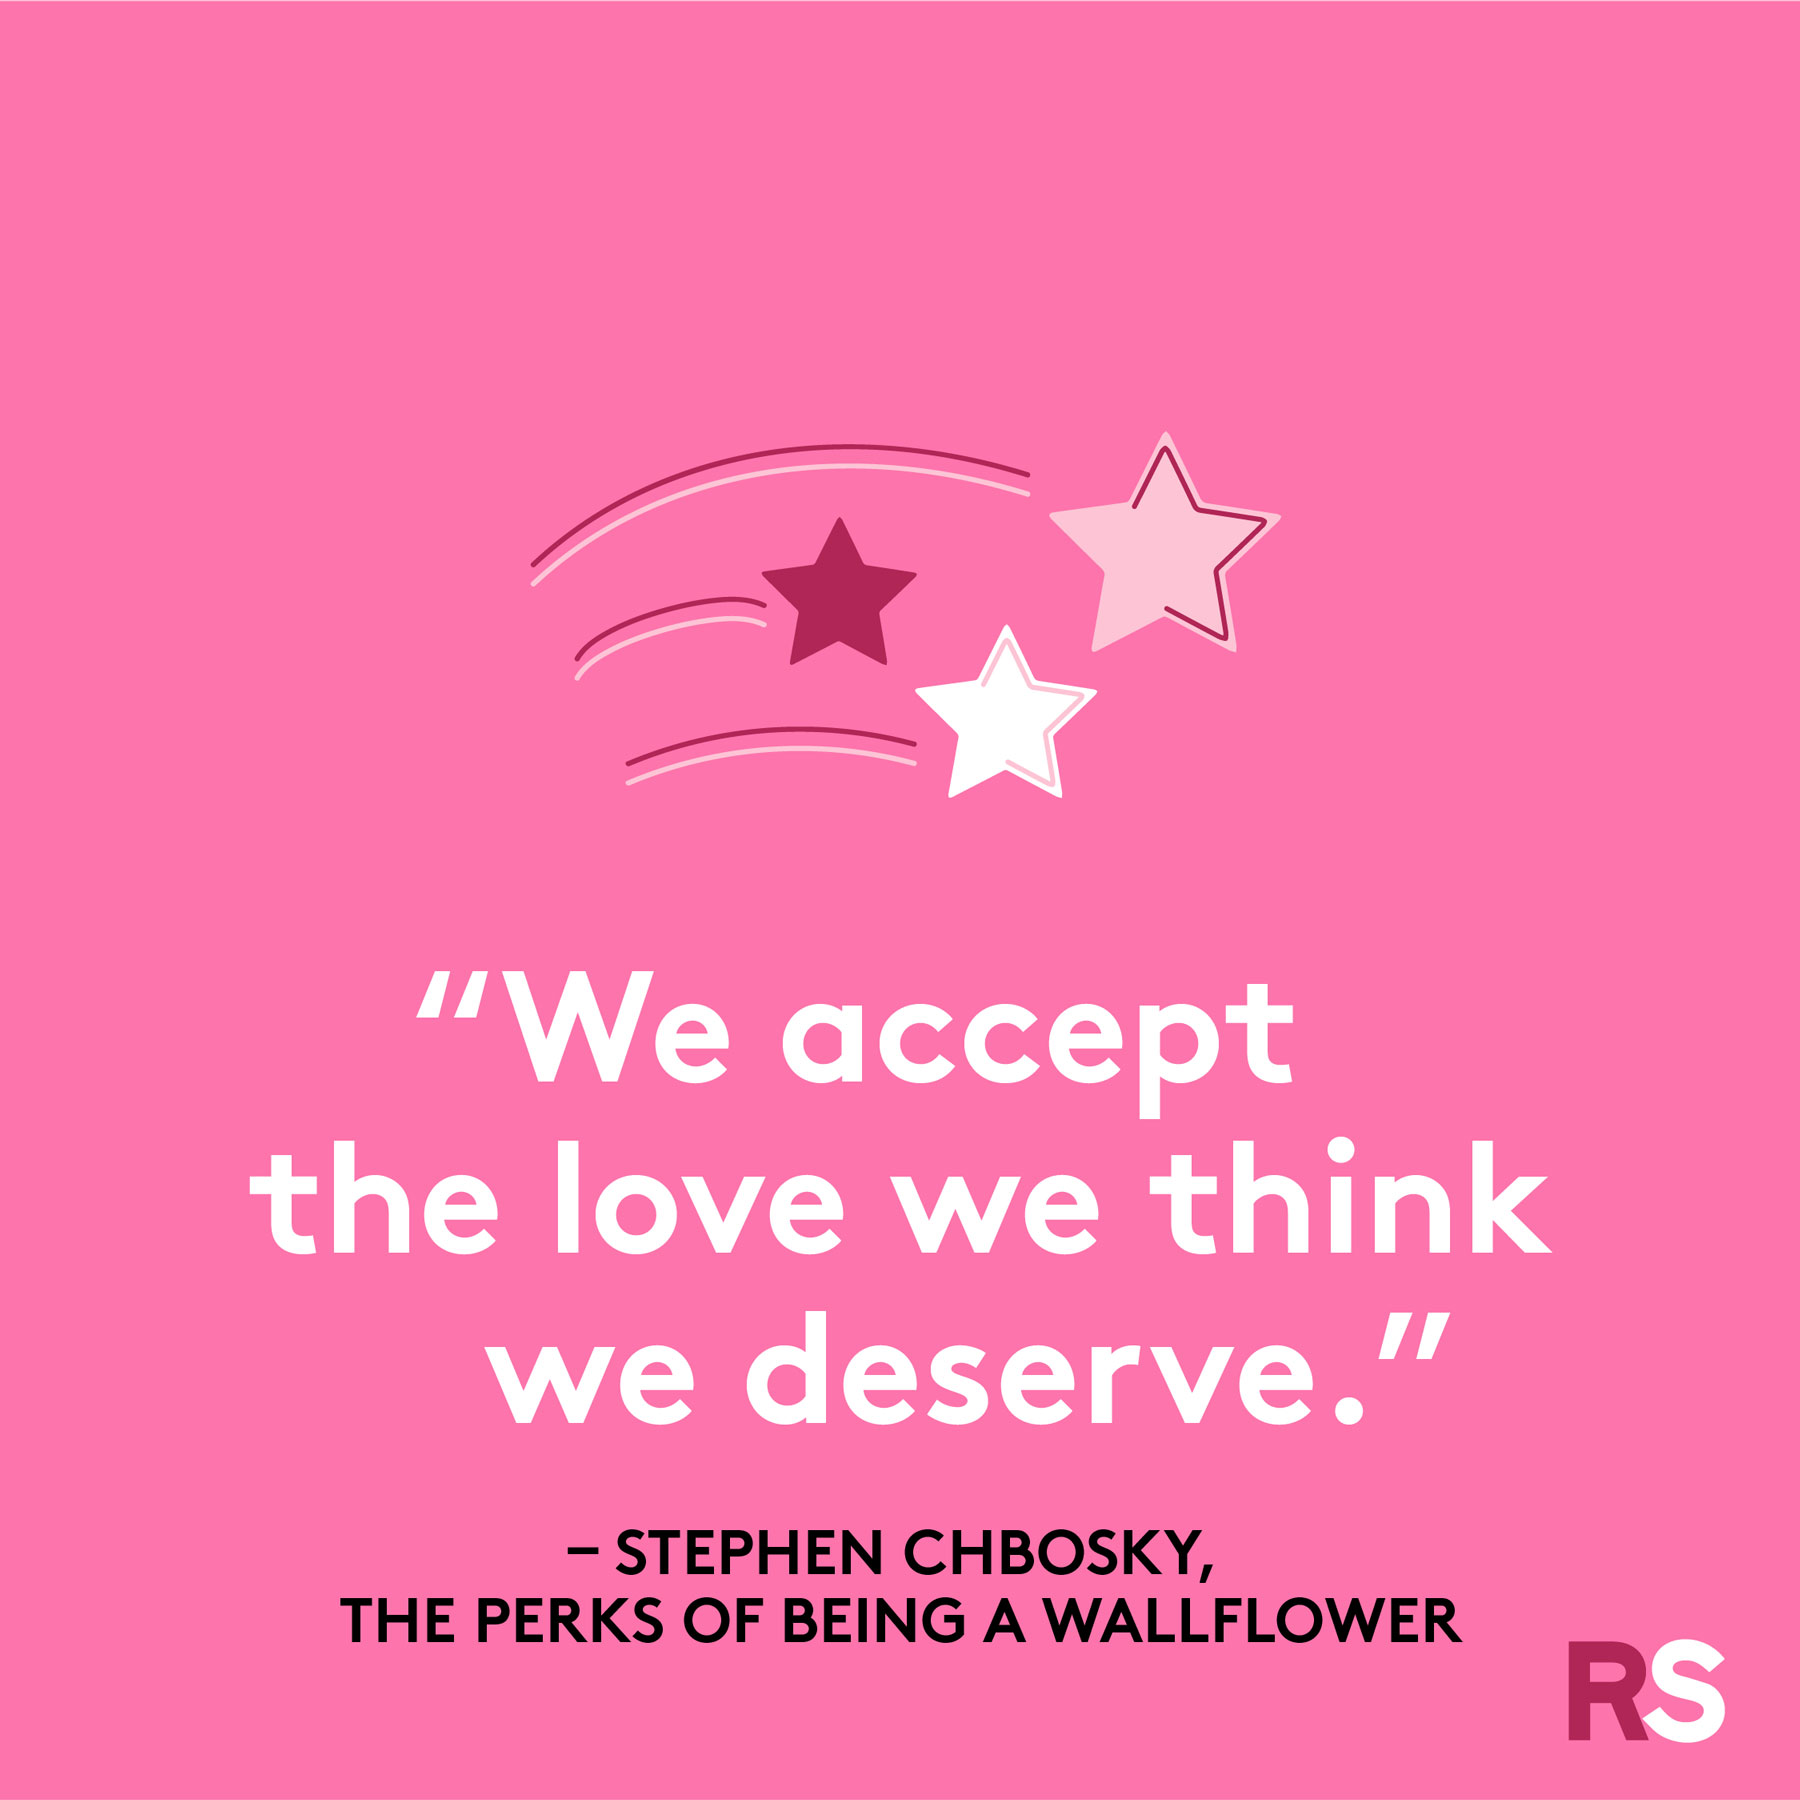 Love quotes, quotes about love - Stephen Chbosky, The Perks of Being a Wallflower